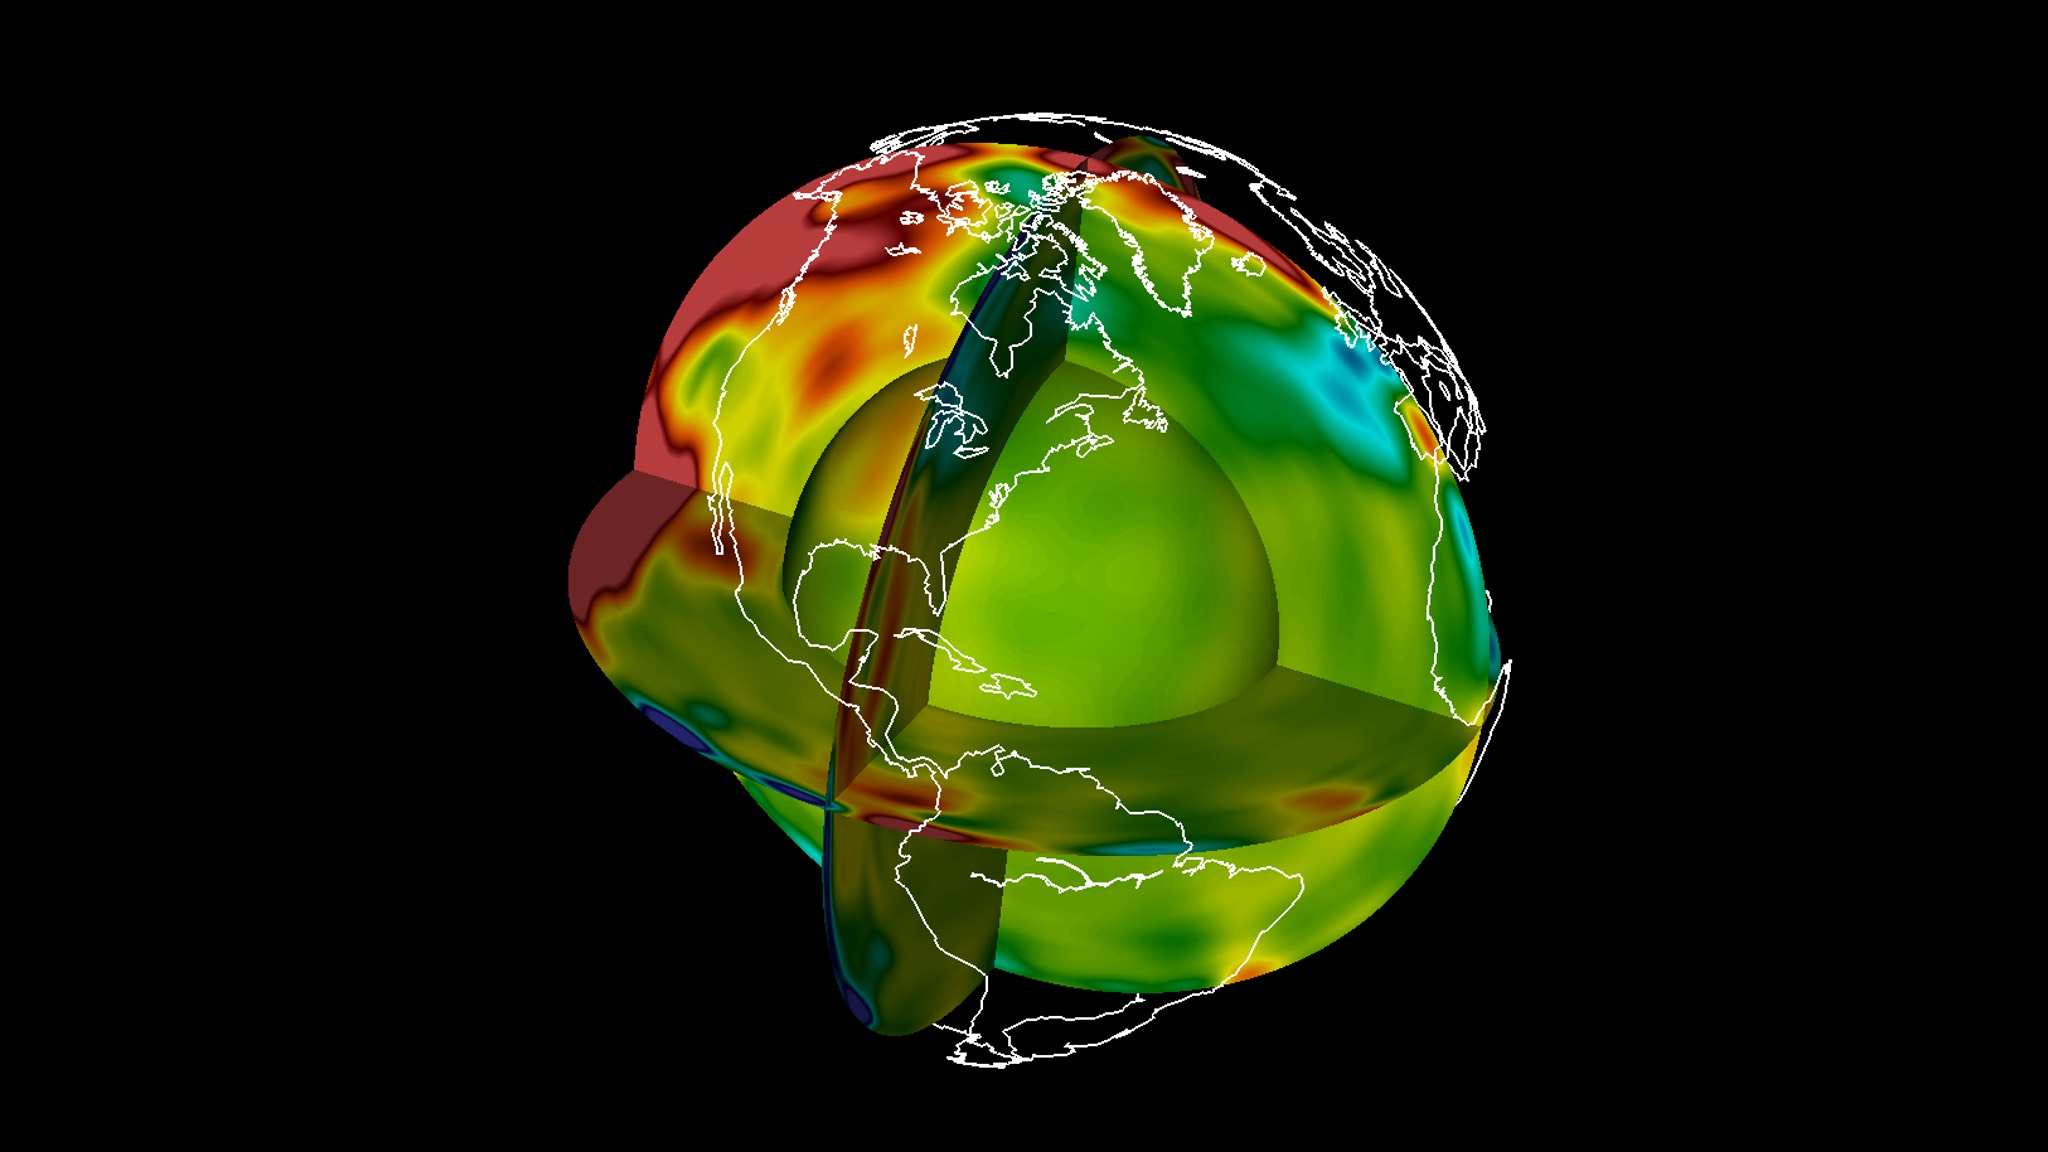 Math Proof Could Help Us Describe The Earth S Interior